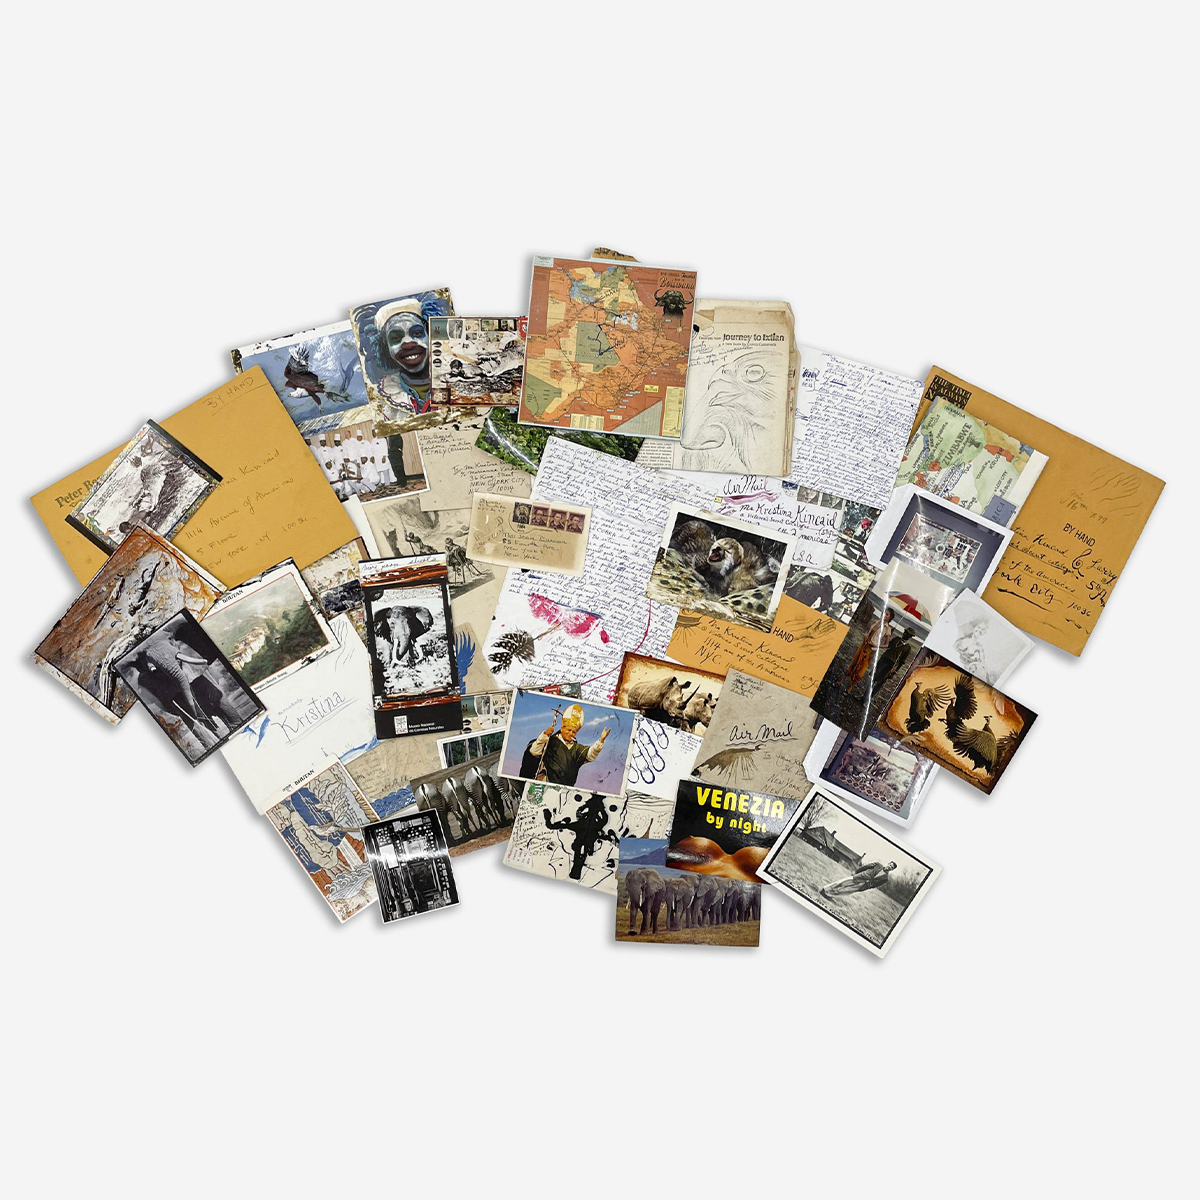 Peter Beard Drawings Accompanied by Correspondence and Effects